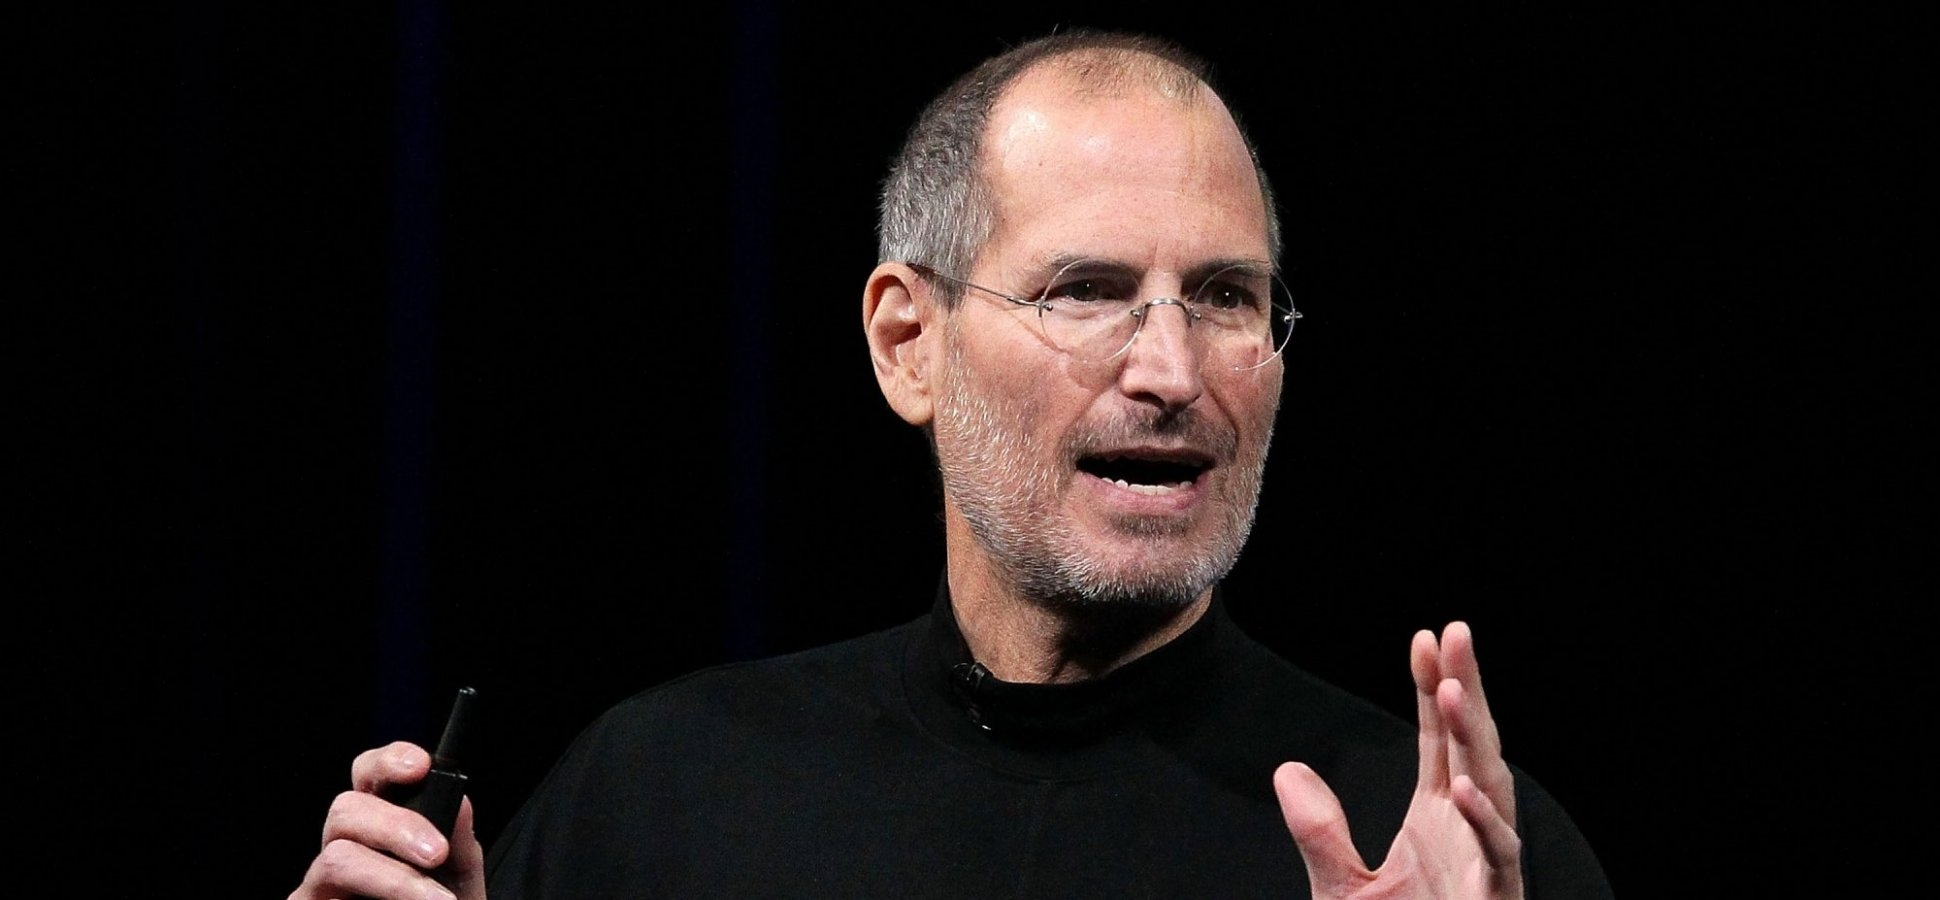 Steve Jobs Said There's 1 Decision That Separates Leaders Who Achieve Success From Those Who Still Don't Get It